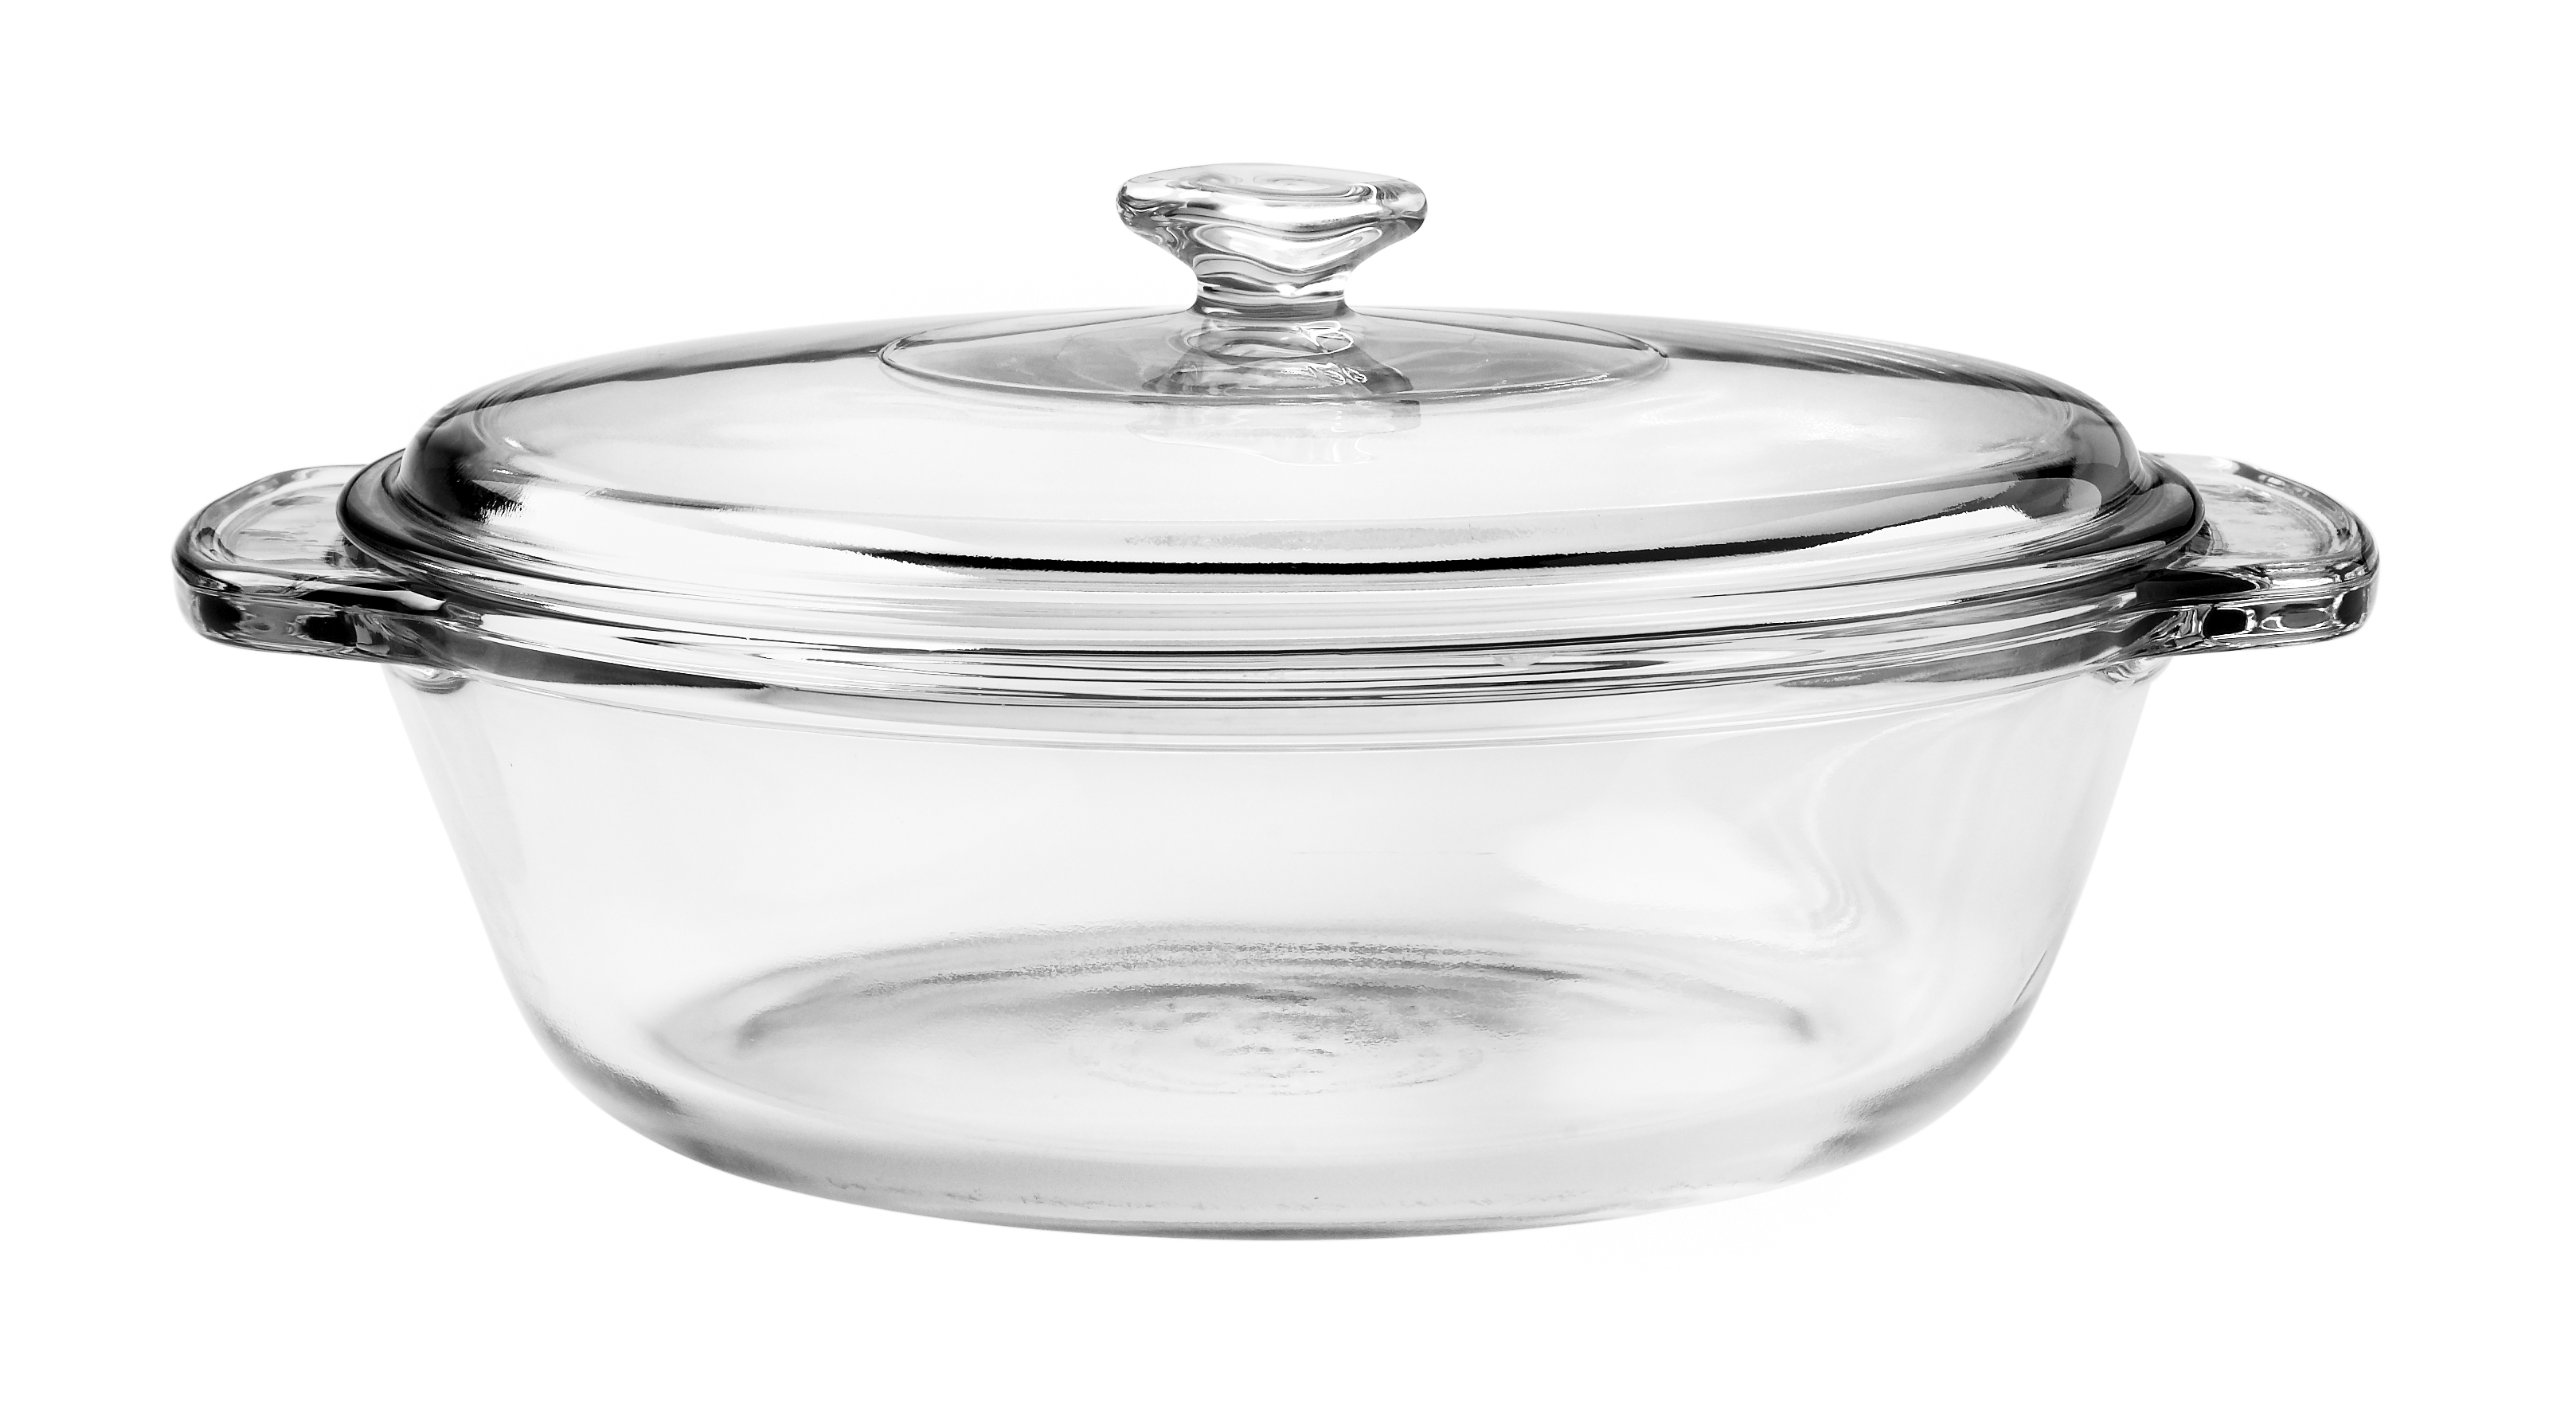 Anchor Hocking 77890 Fire-King Casserole Baking Dish with Lid, Glass, 1.5-Quart by Anchor Hocking (Image #1)